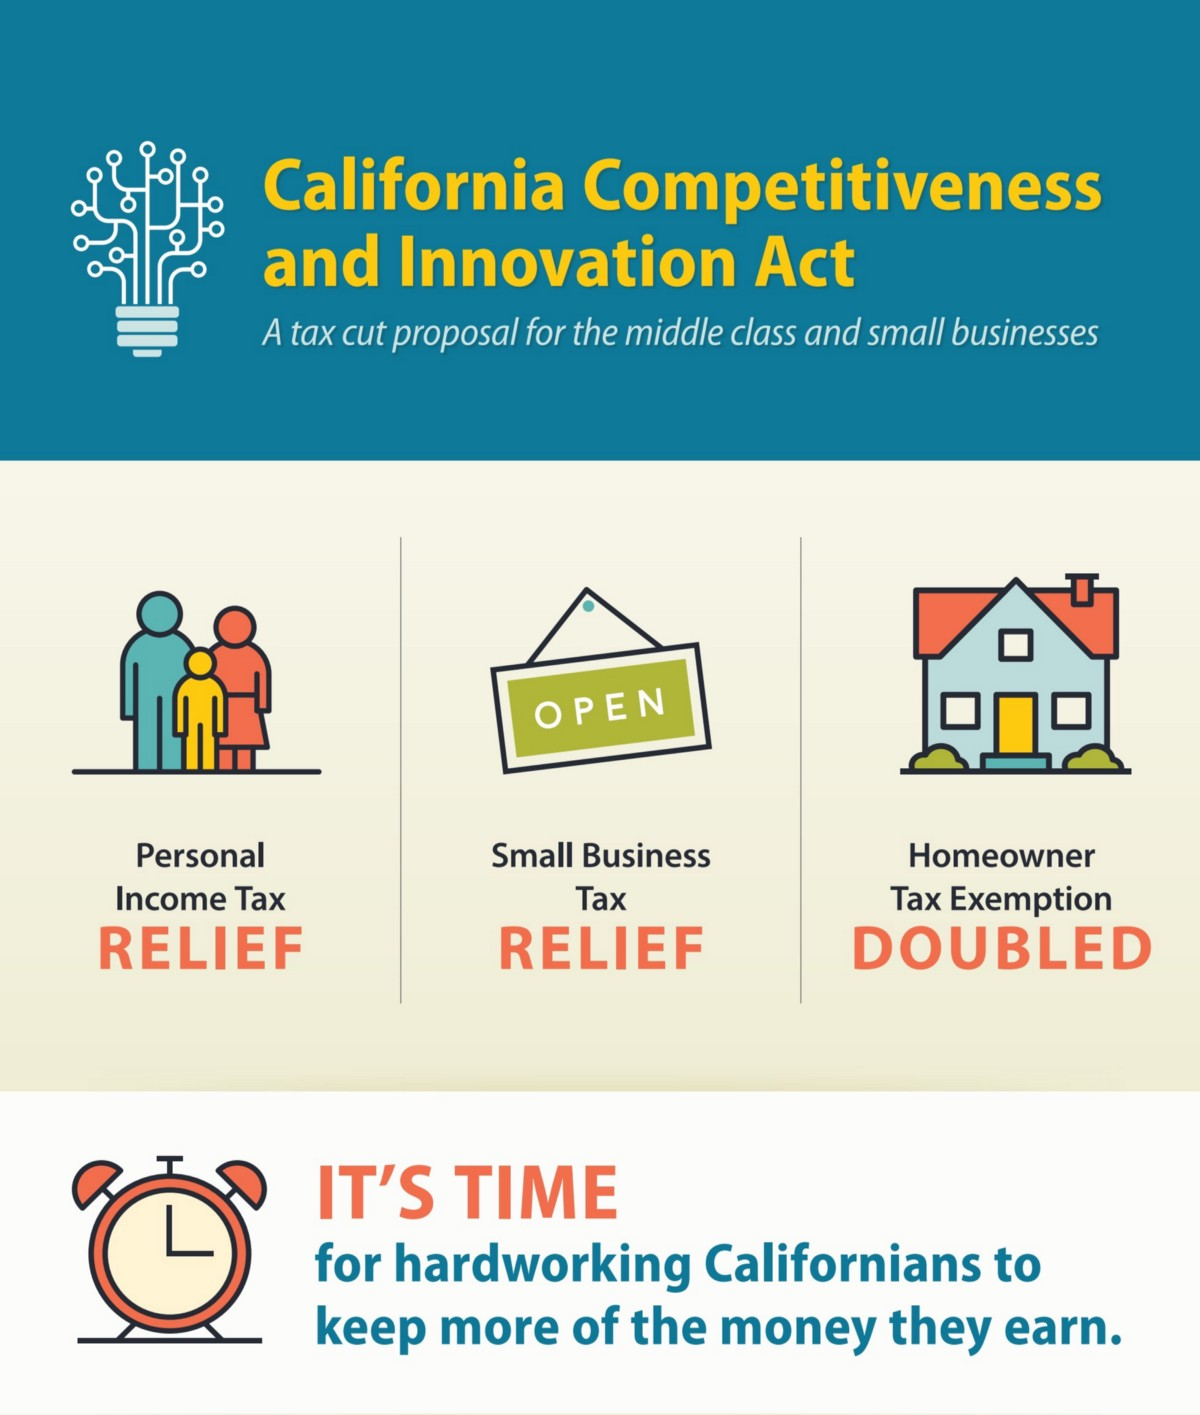 California Tax Cut Proposal for the Middle Class and Small